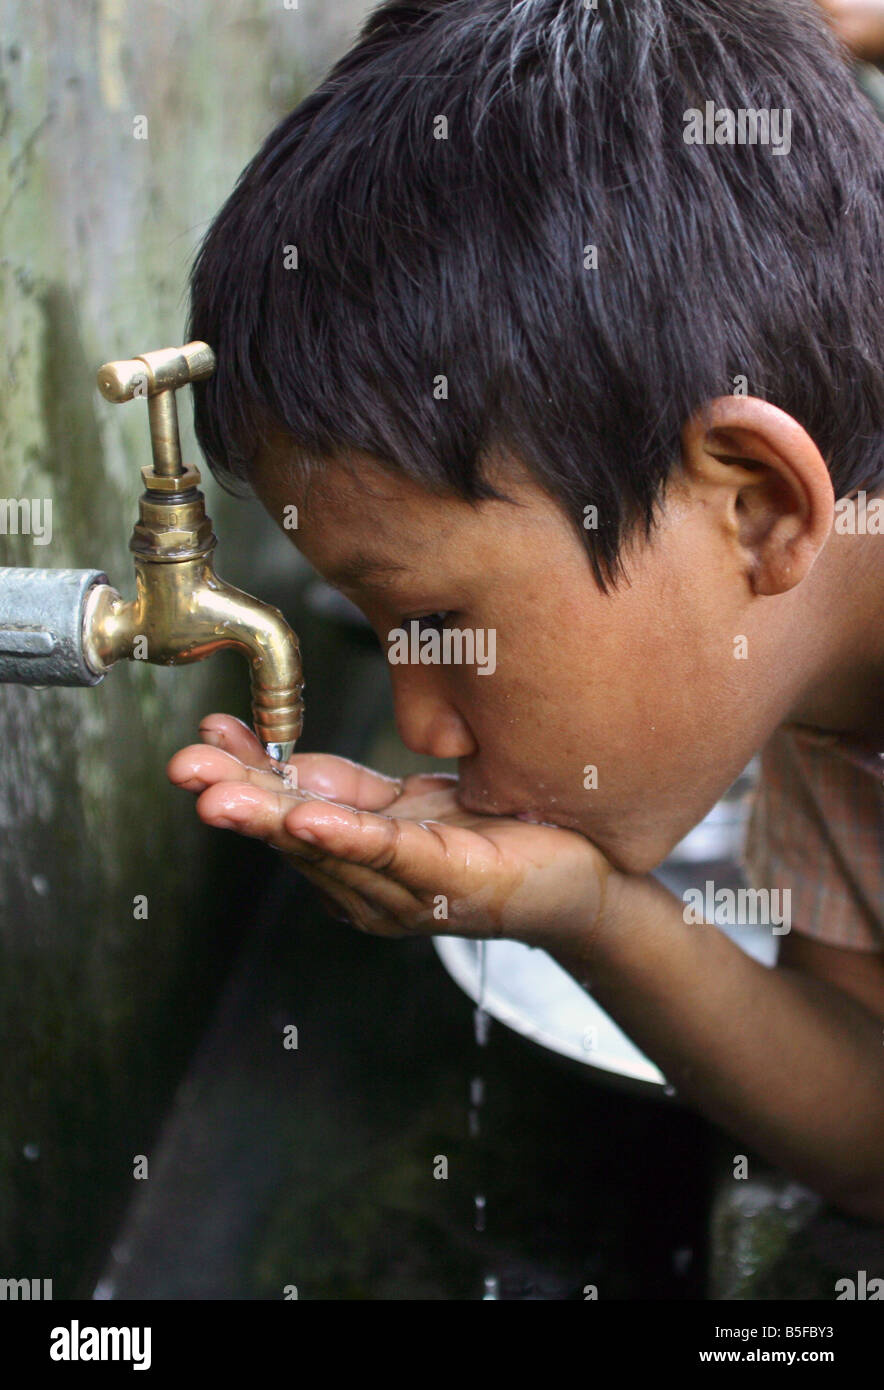 Nepal: Boy drinks from a waterpipe - Stock Image